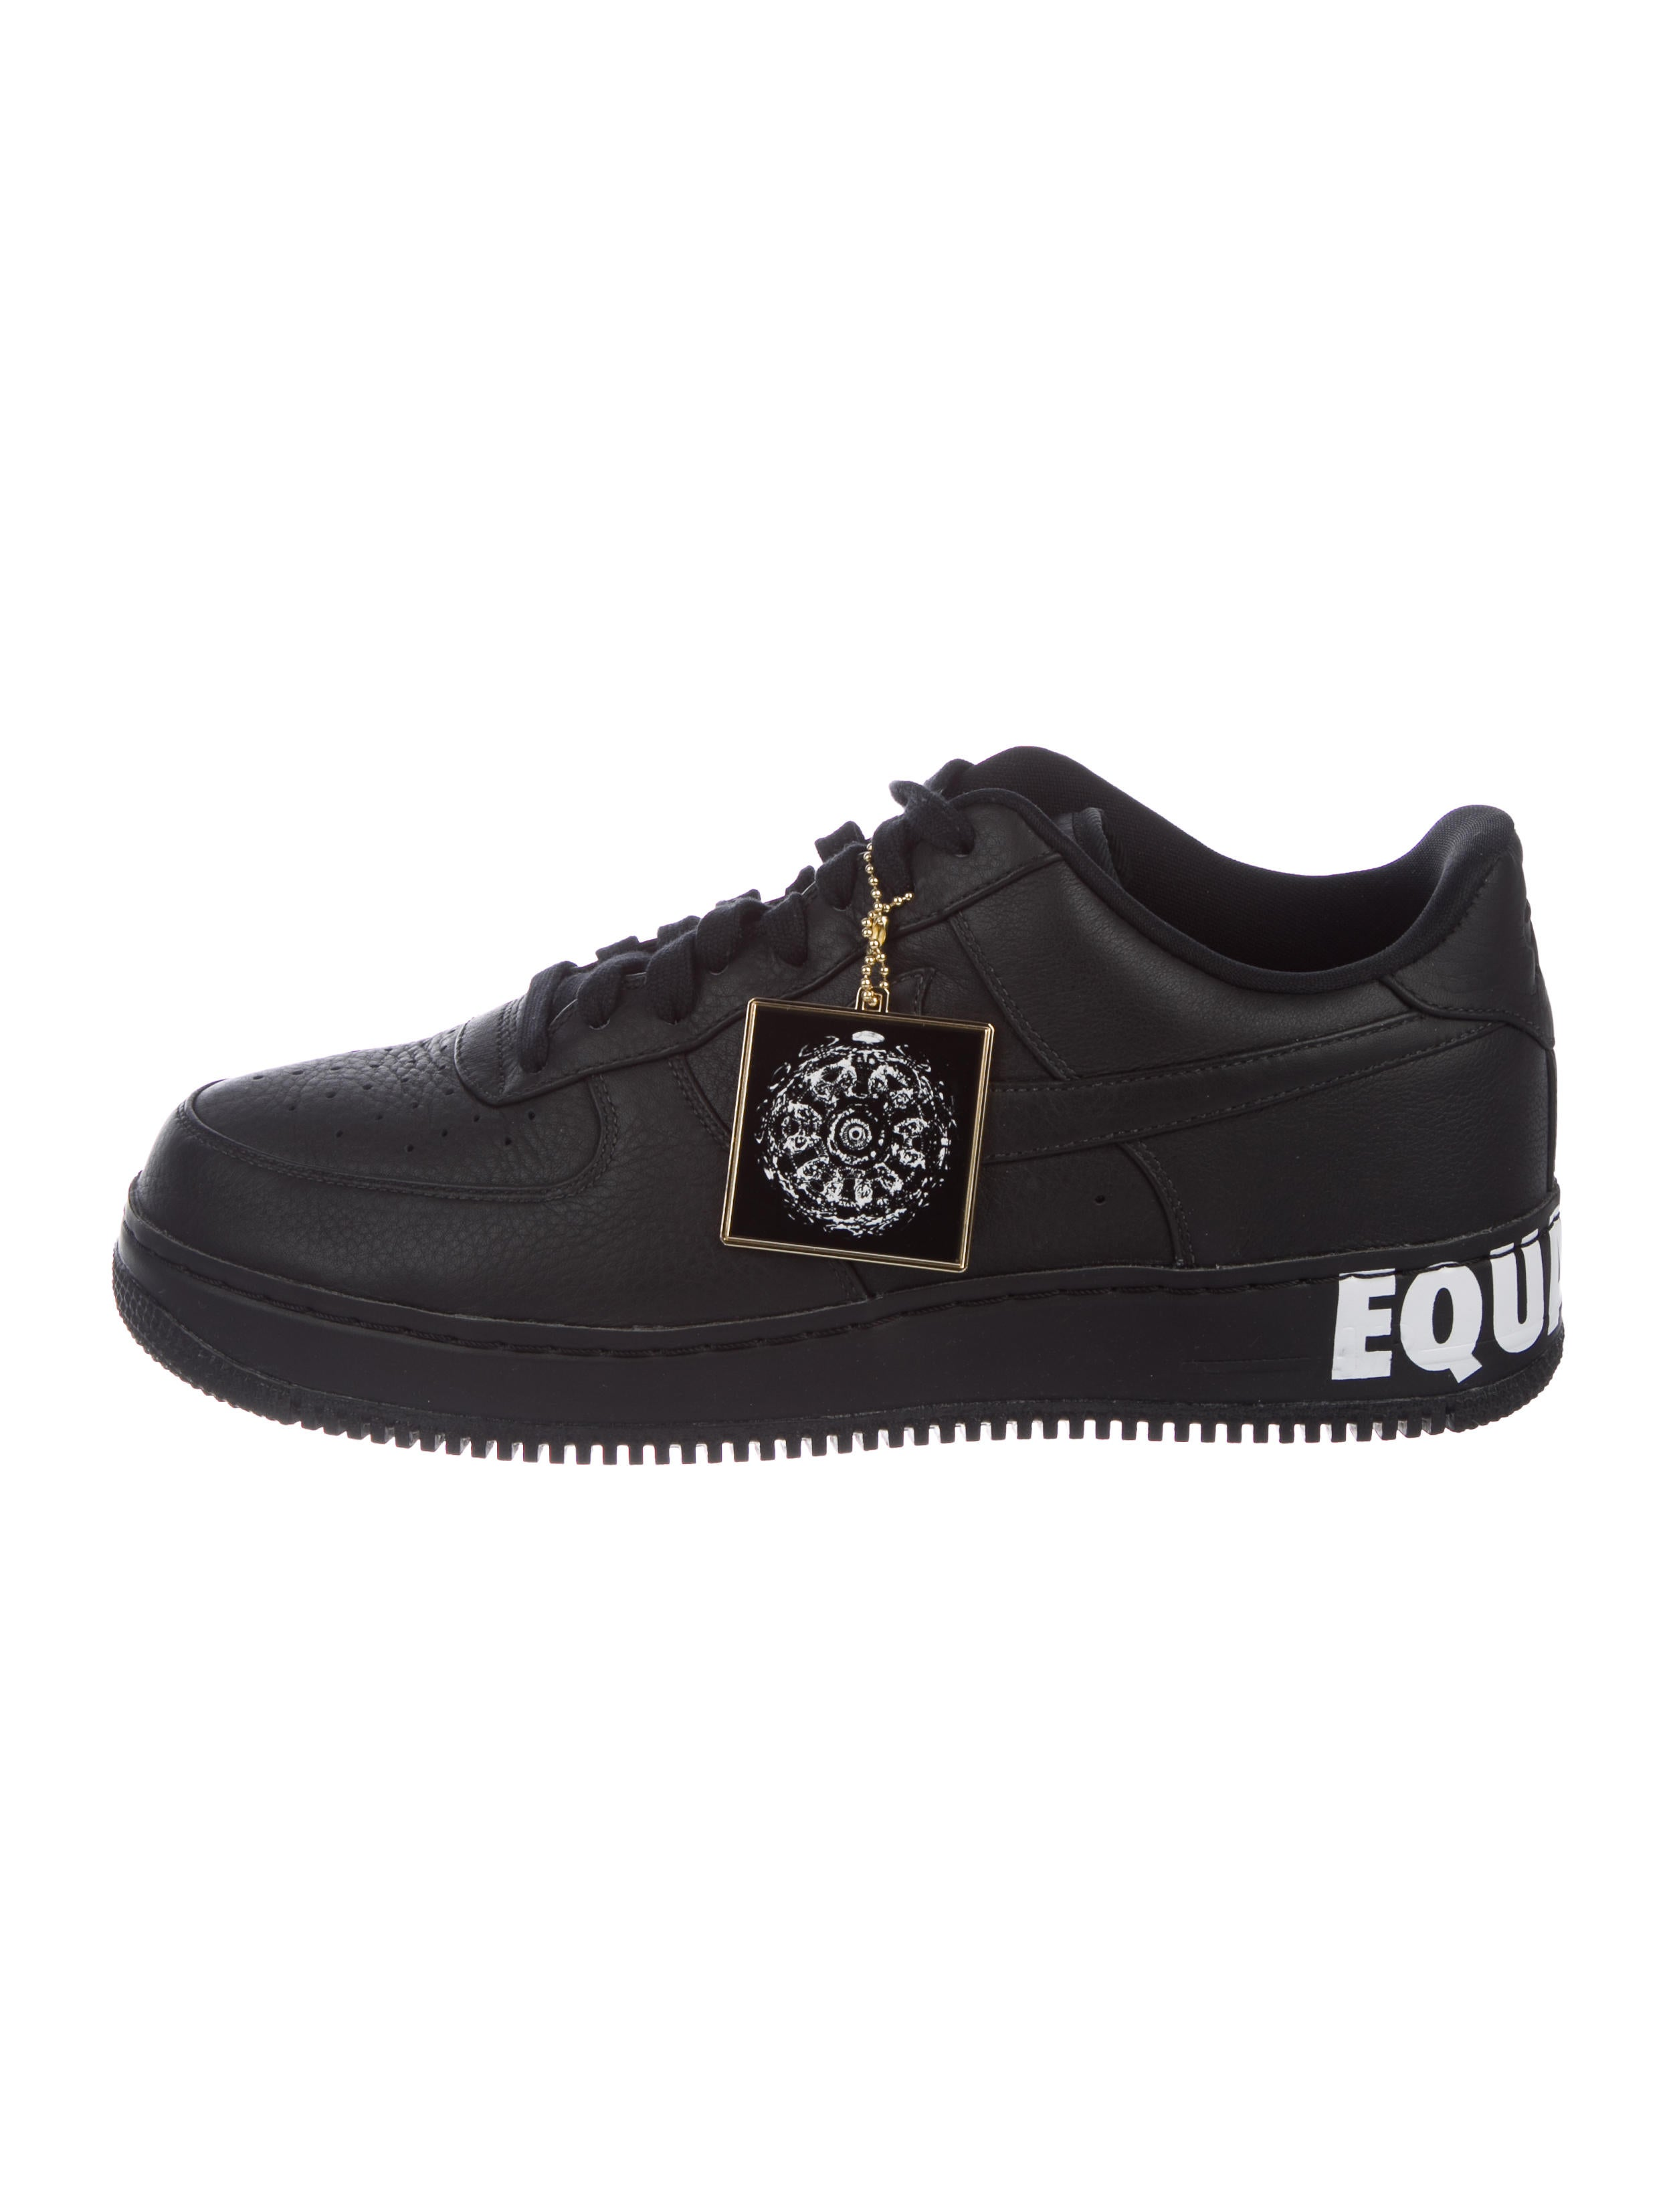 754c4a0edbbd Nike 2018 Air Force 1 CMFT Equality Black History Month Sneakers ...